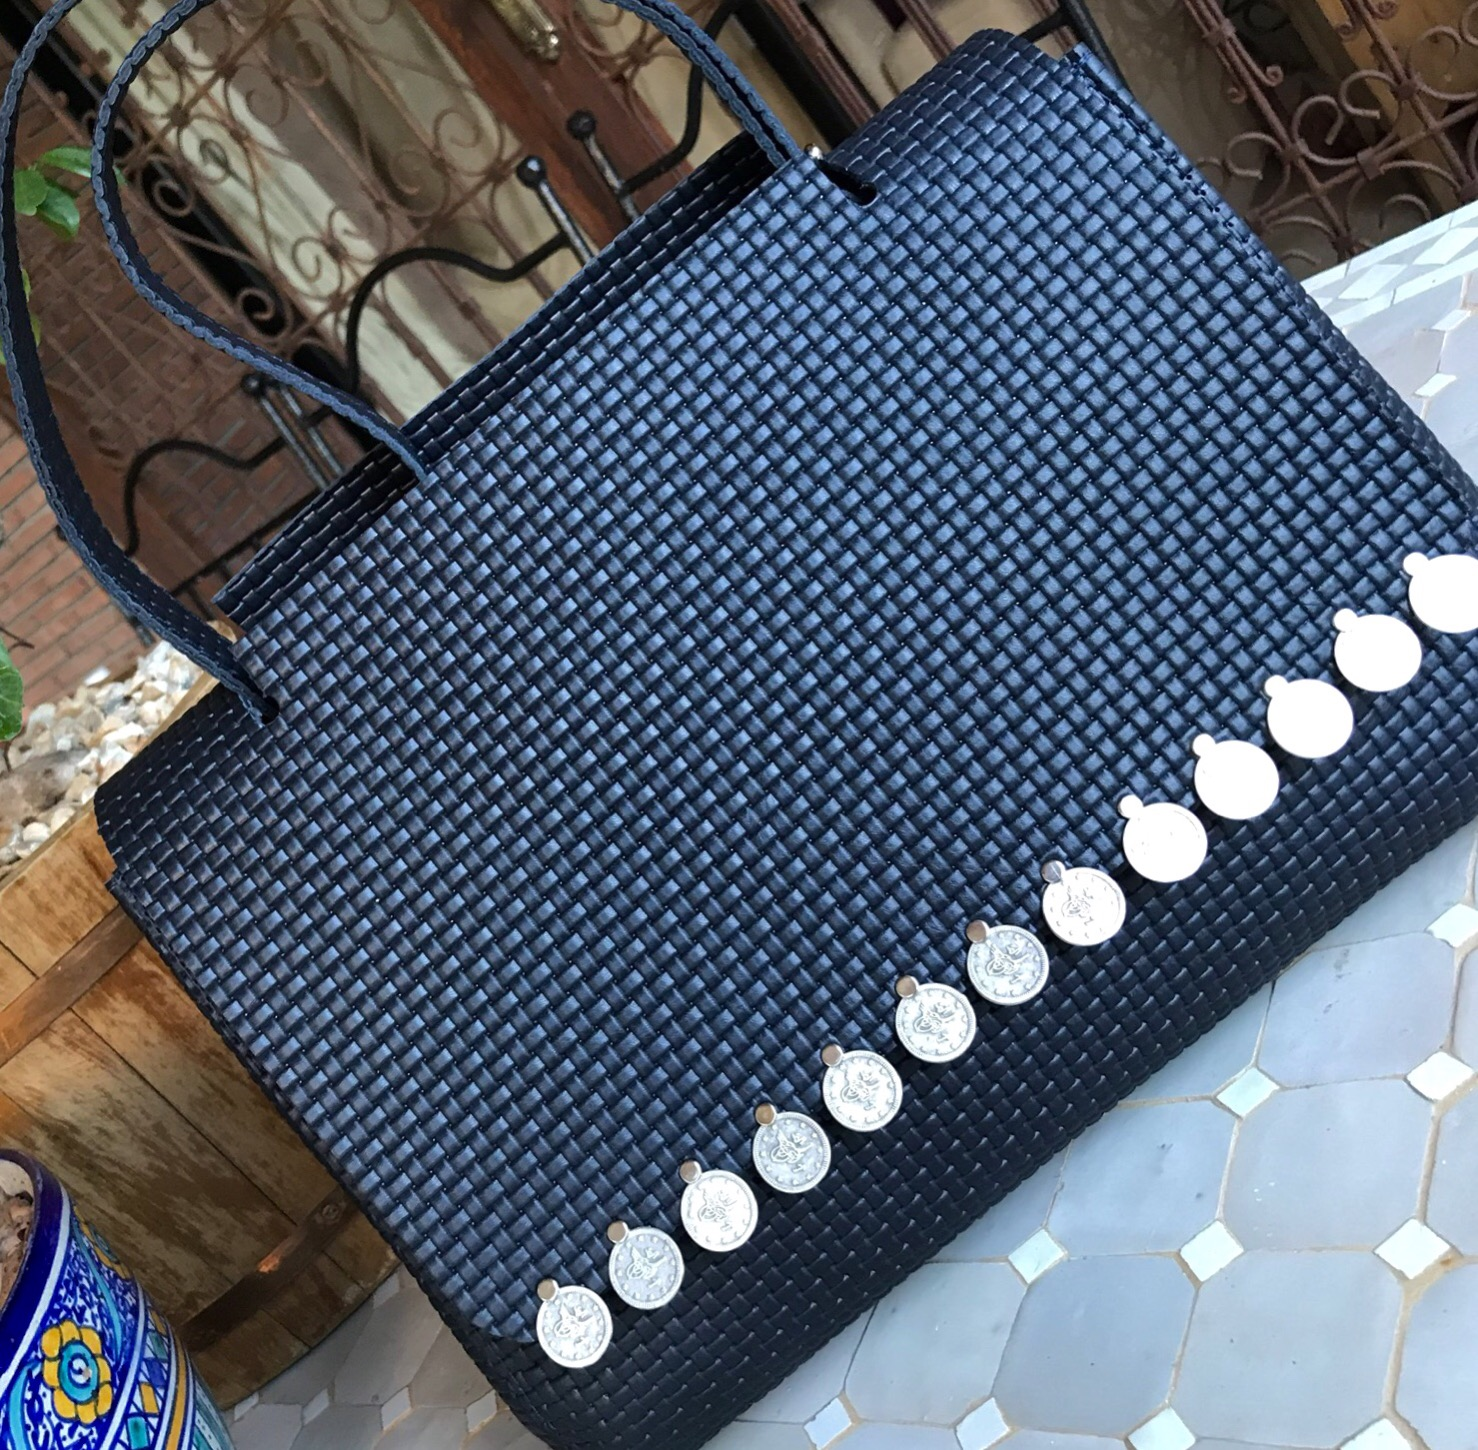 Big leather bag blue with coins